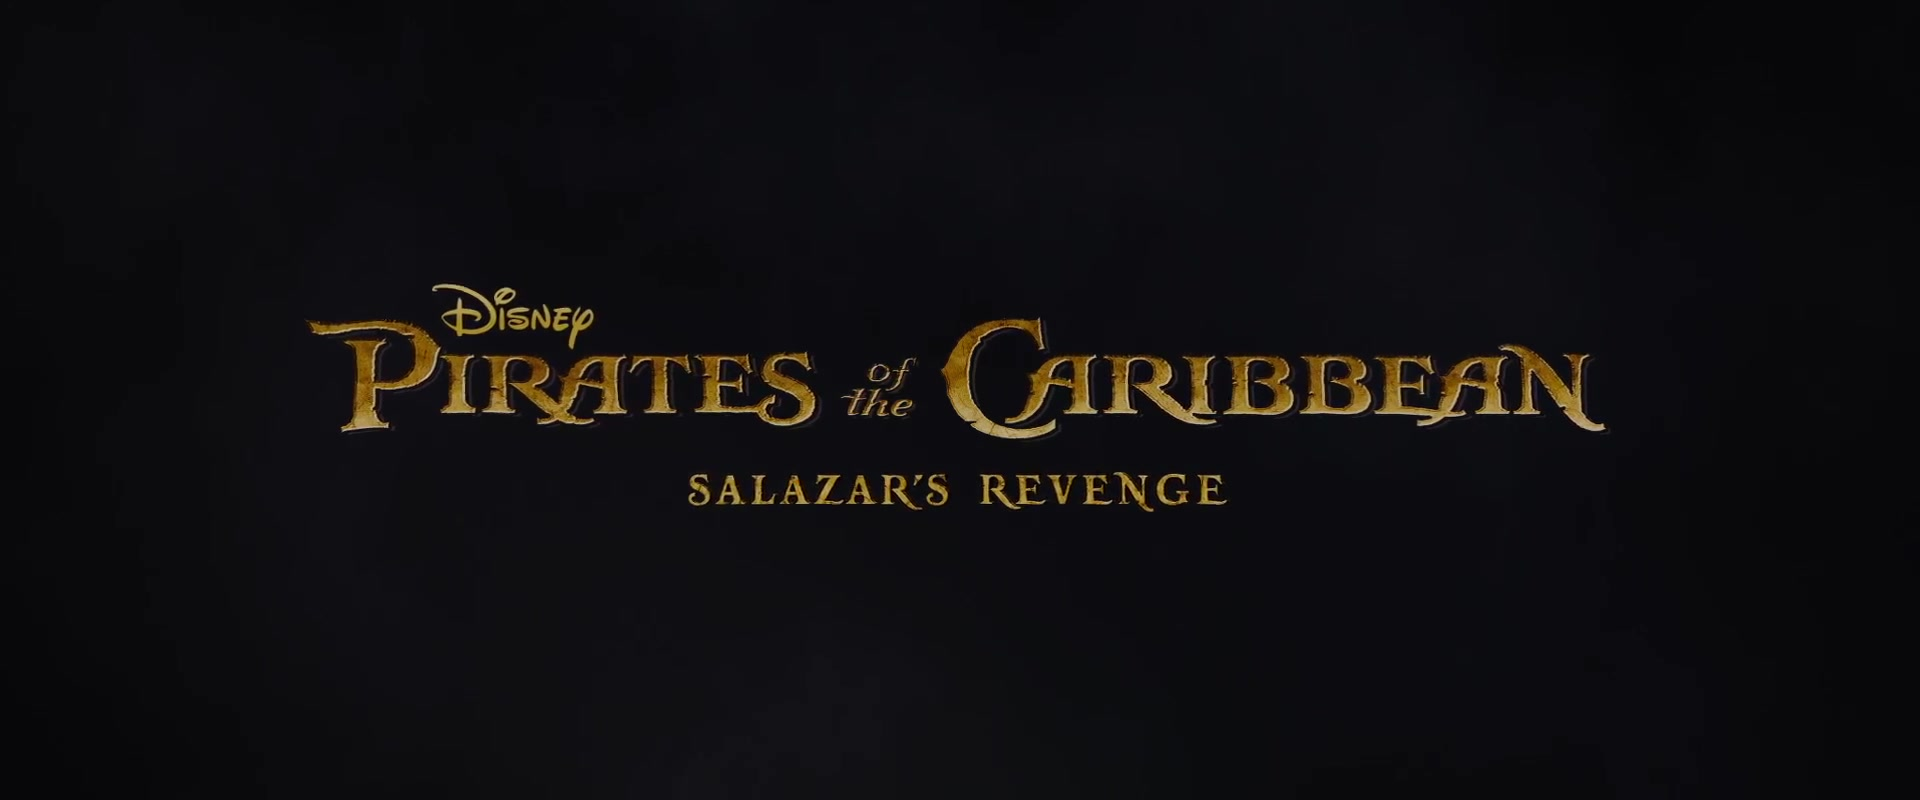 Image result for pirates of the caribbean title